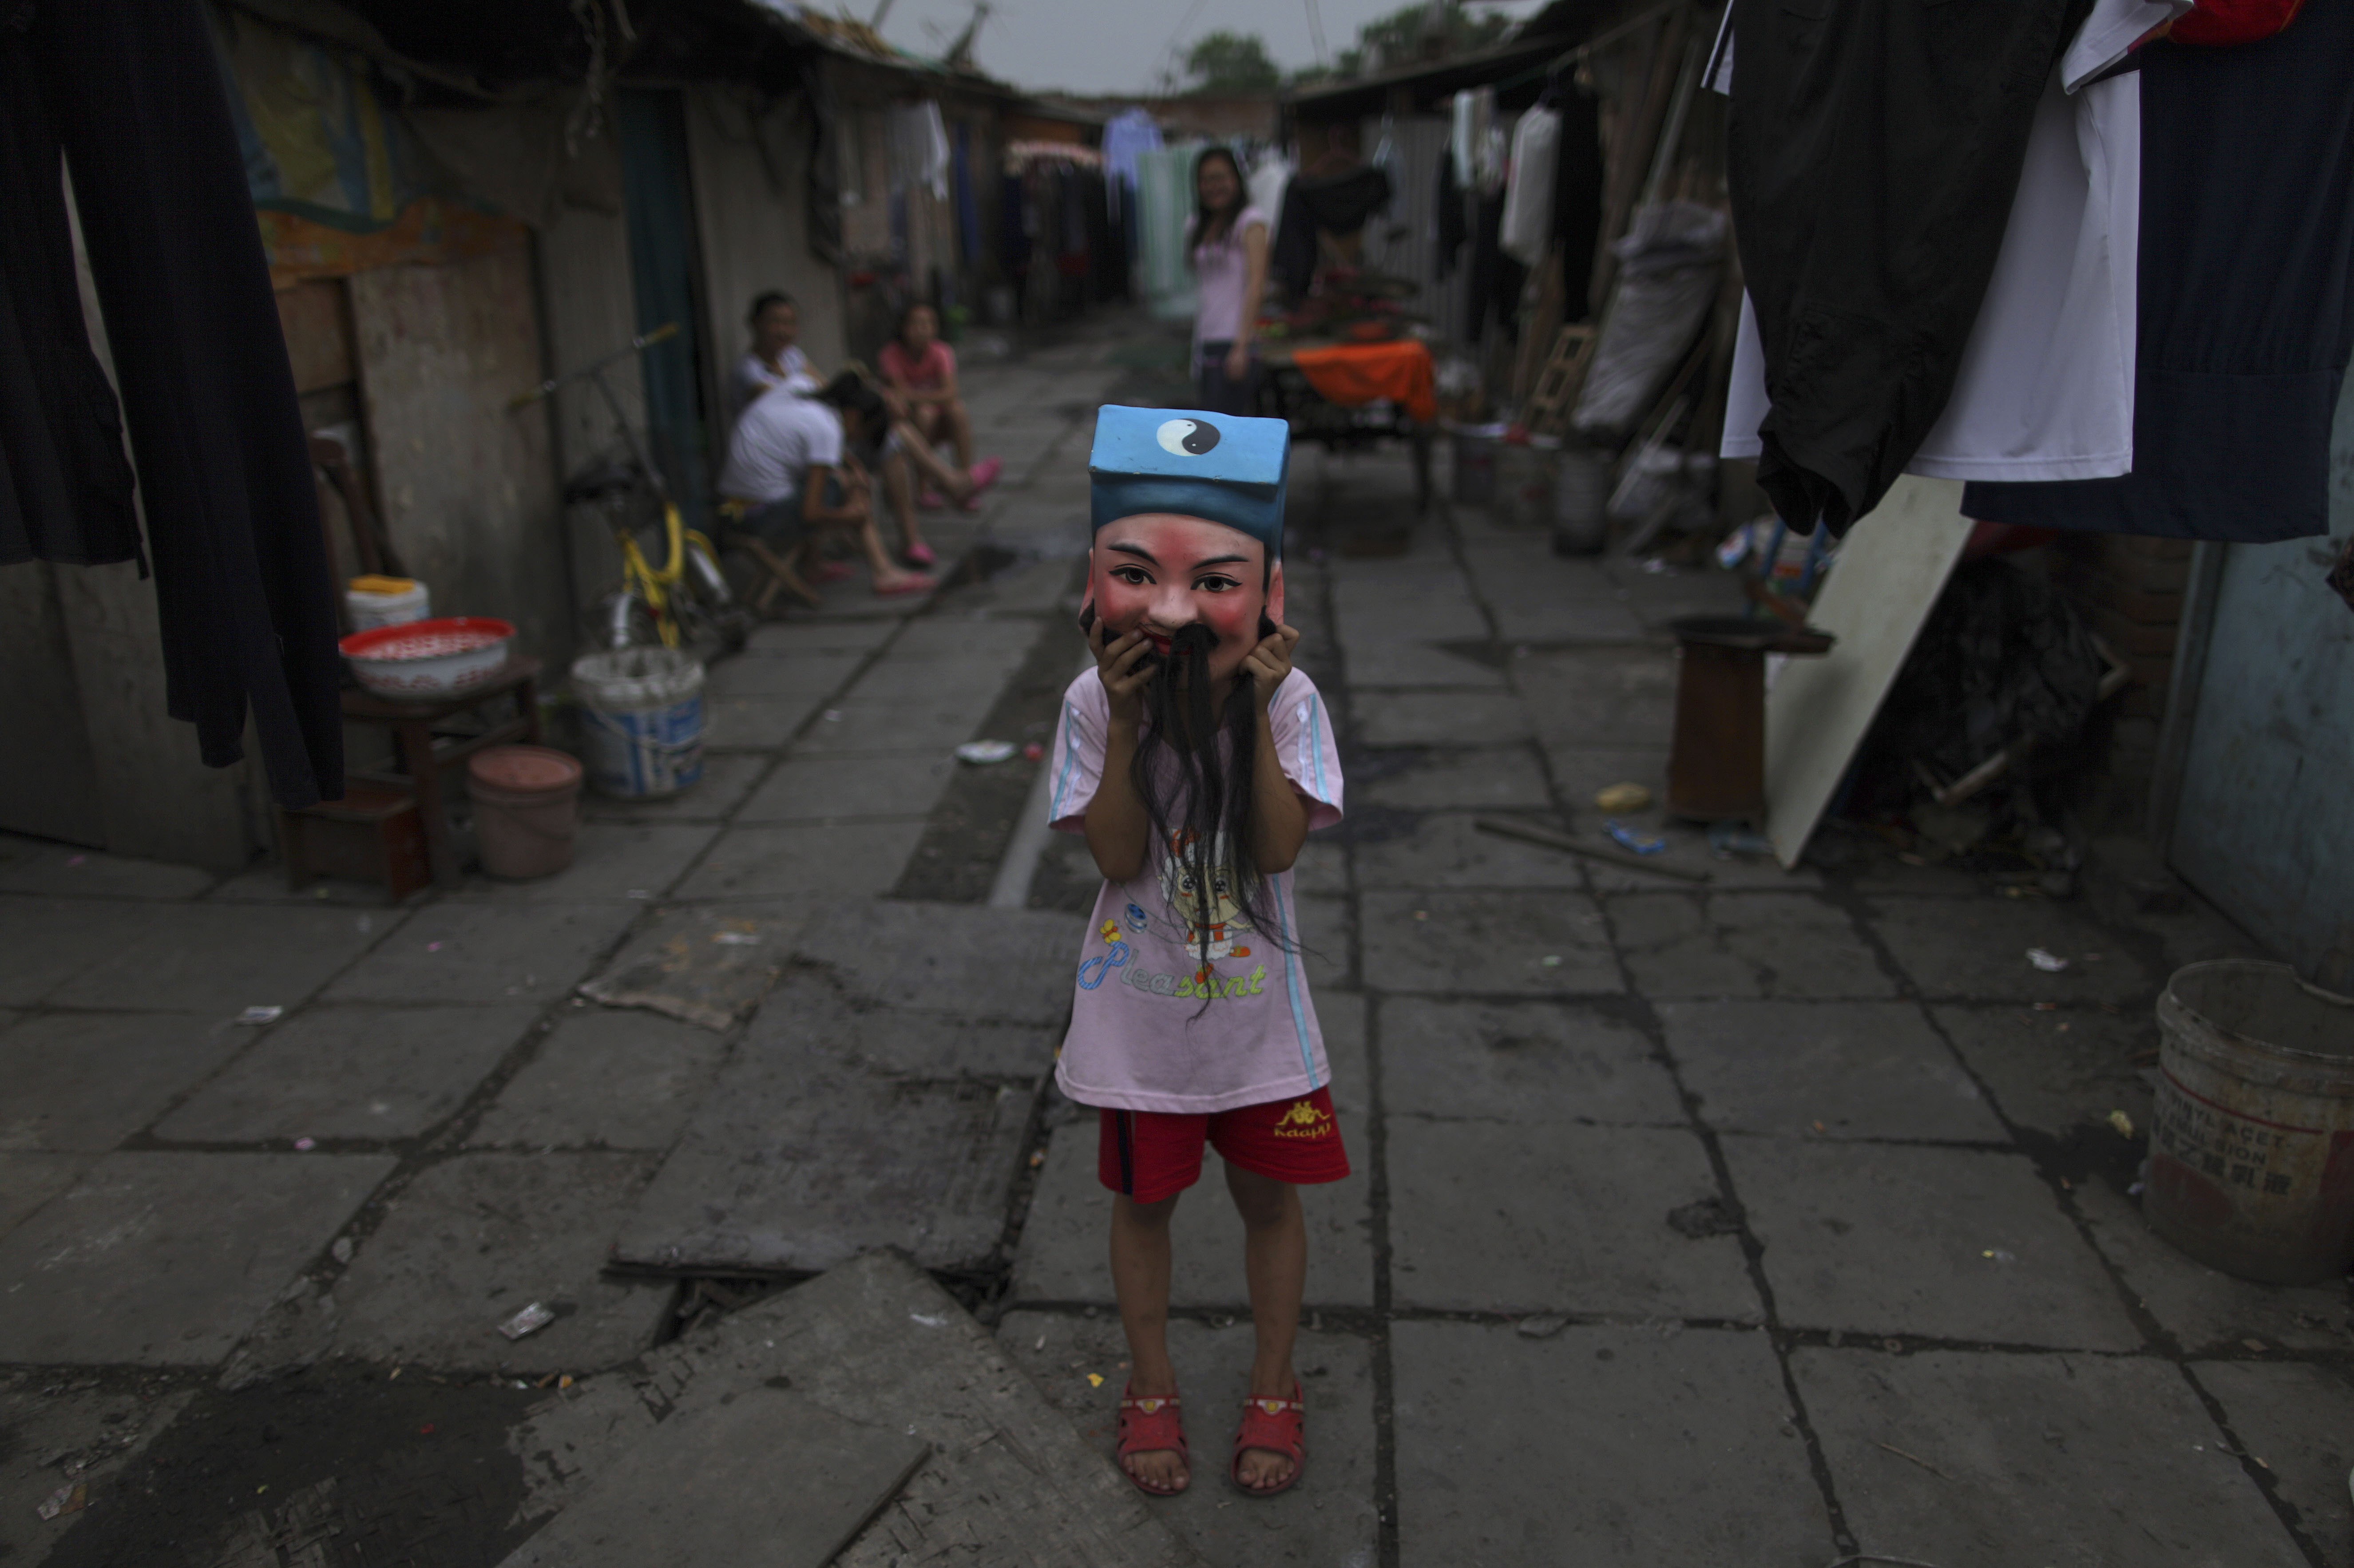 A Chinese girl puts on a mask while playing with other children in a hutong, or a traditional alleyway in Beijing, China on Wednesday.